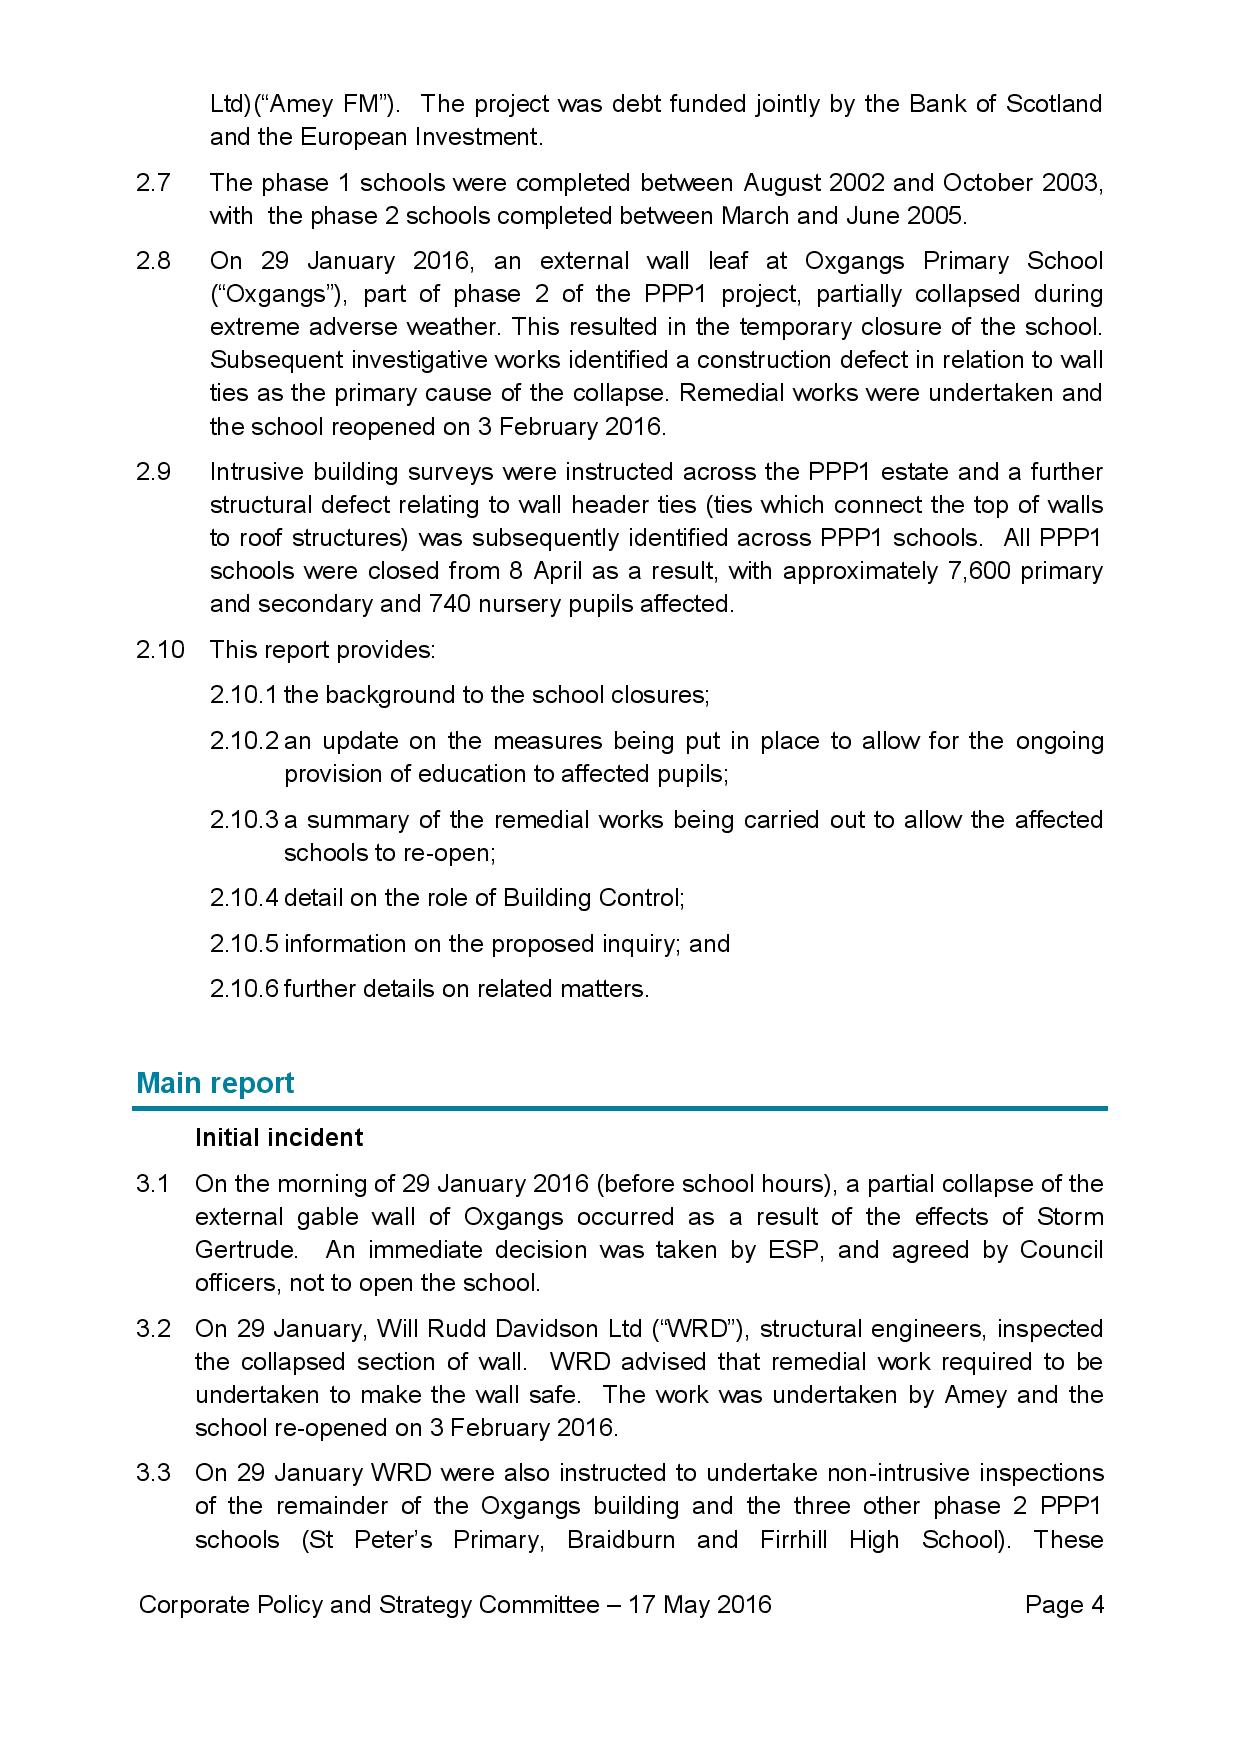 PPP1_Schools_CPS_Report_090516_v14_final-page-004.jpg